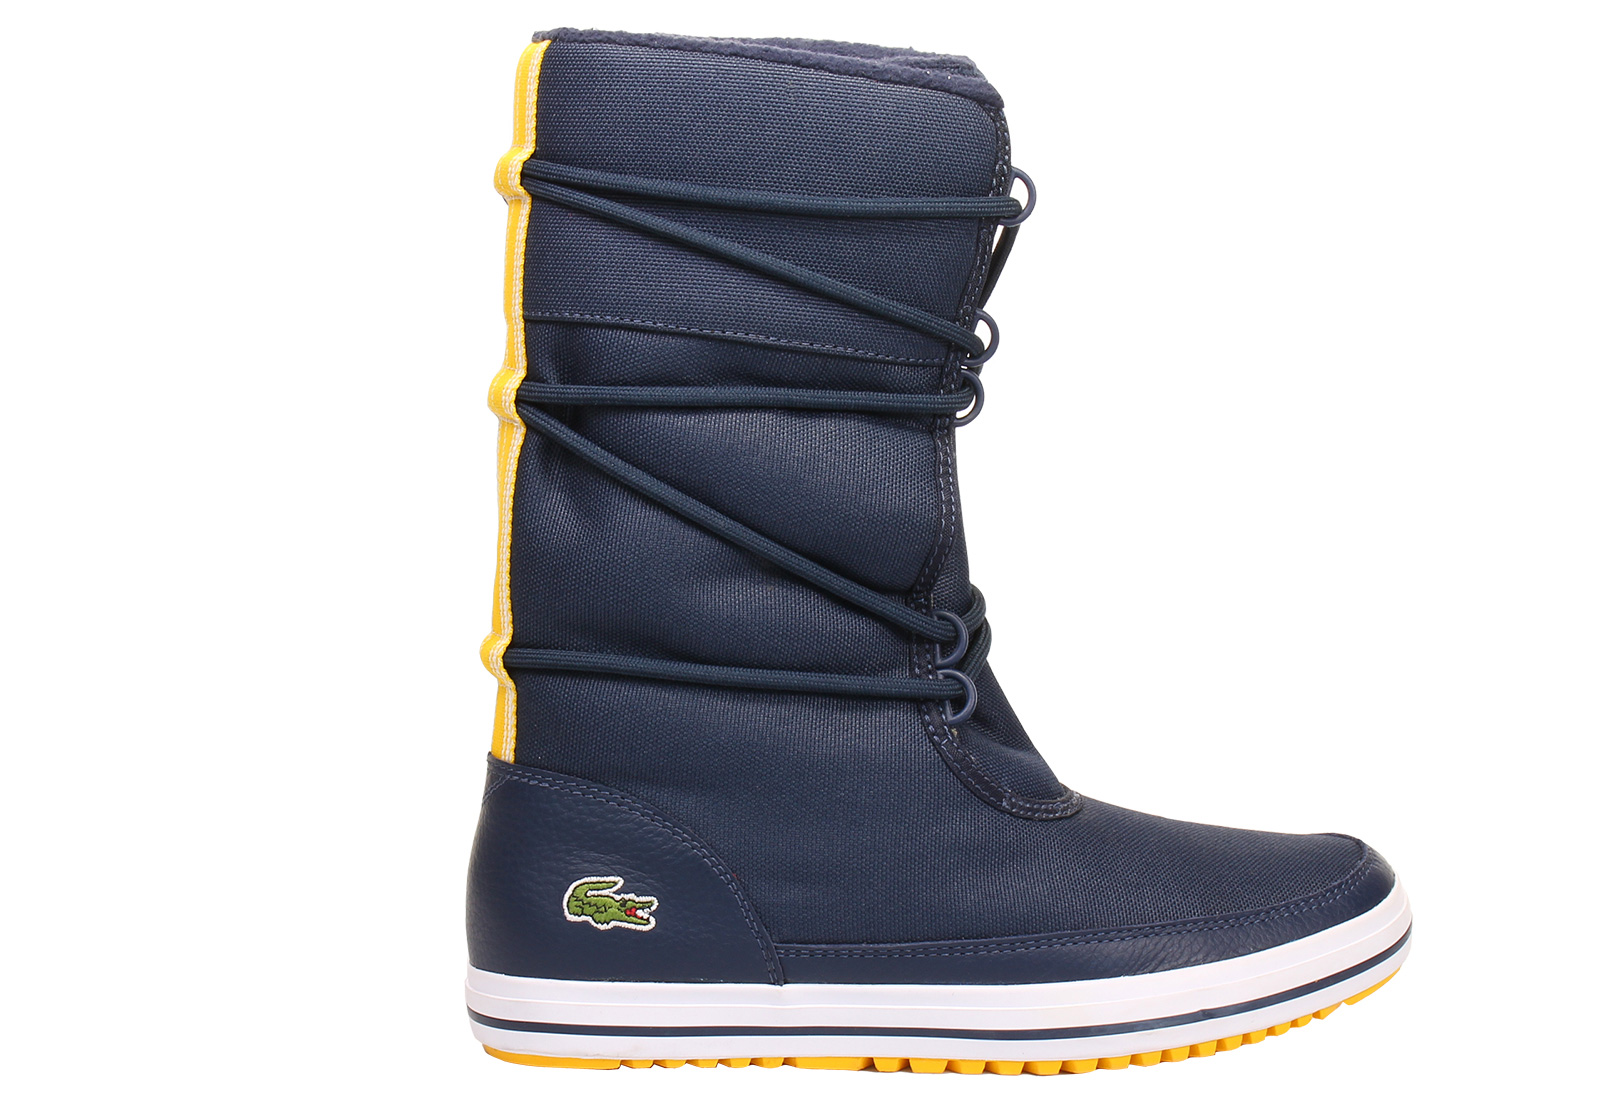 977121f1d Lacoste Boots - Torrino - 133spw1022-250 - Online shop for sneakers ...